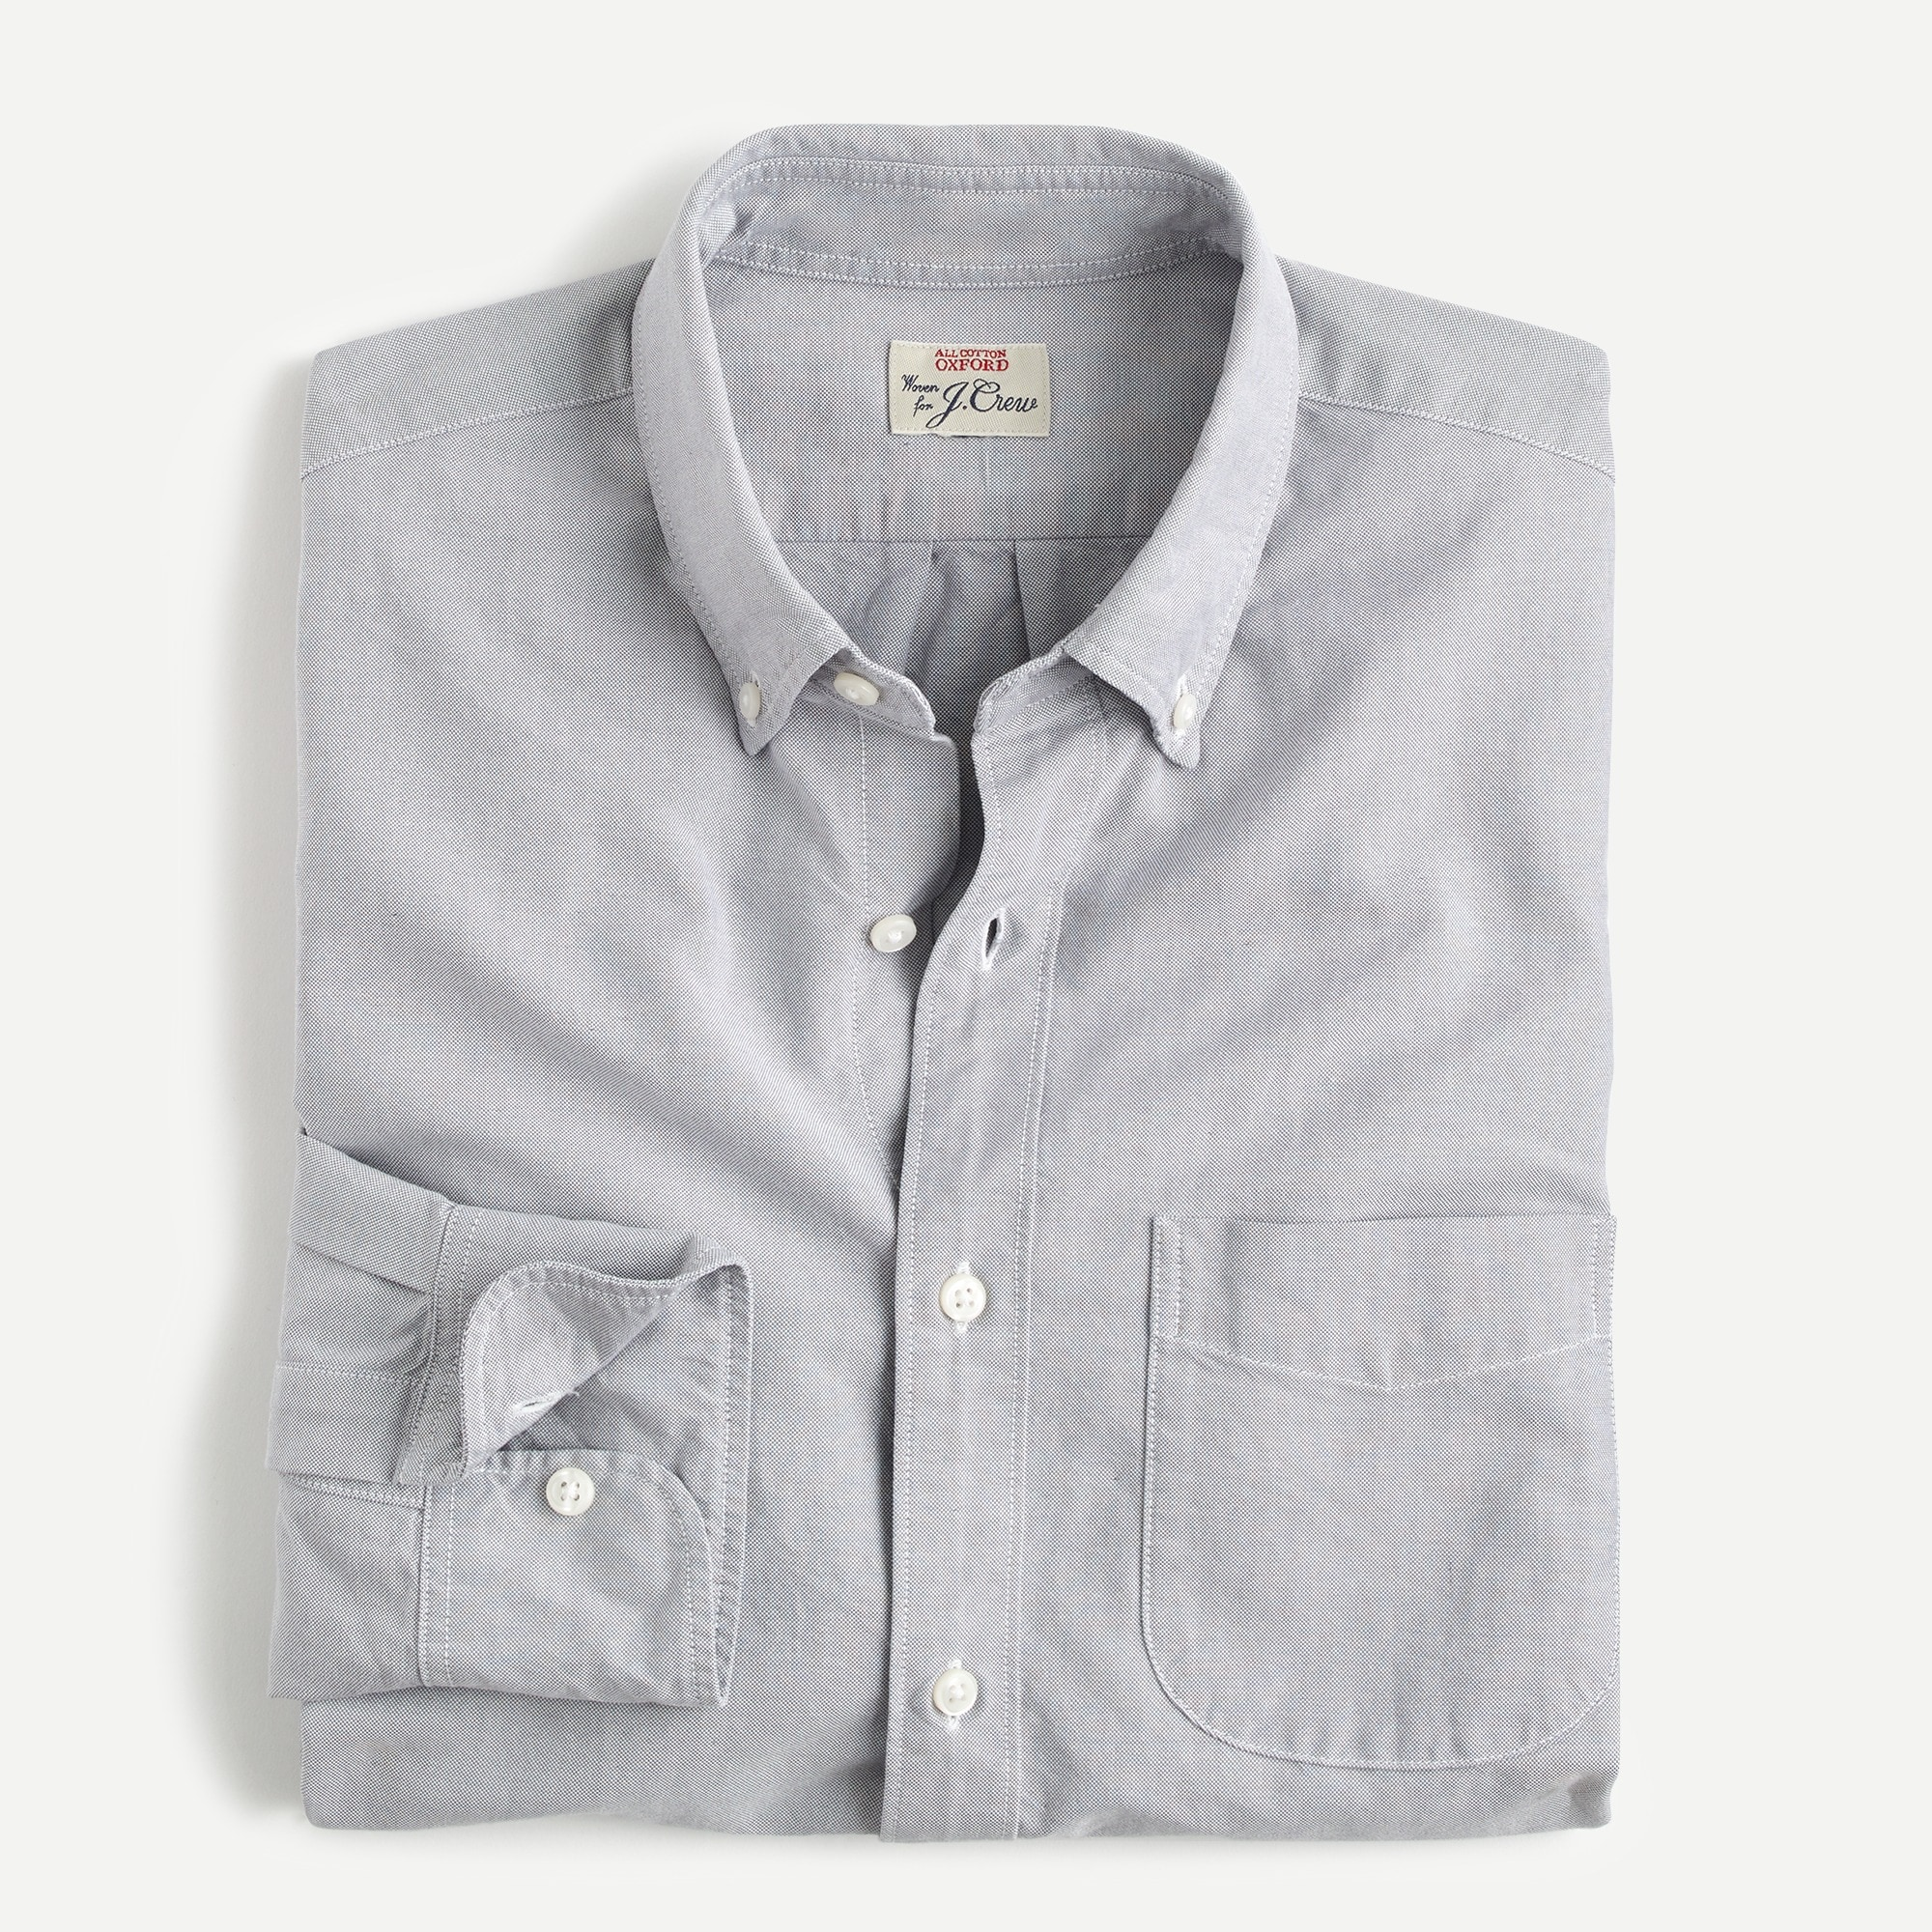 mens Slim American Pima cotton oxford shirt with mechanical stretch